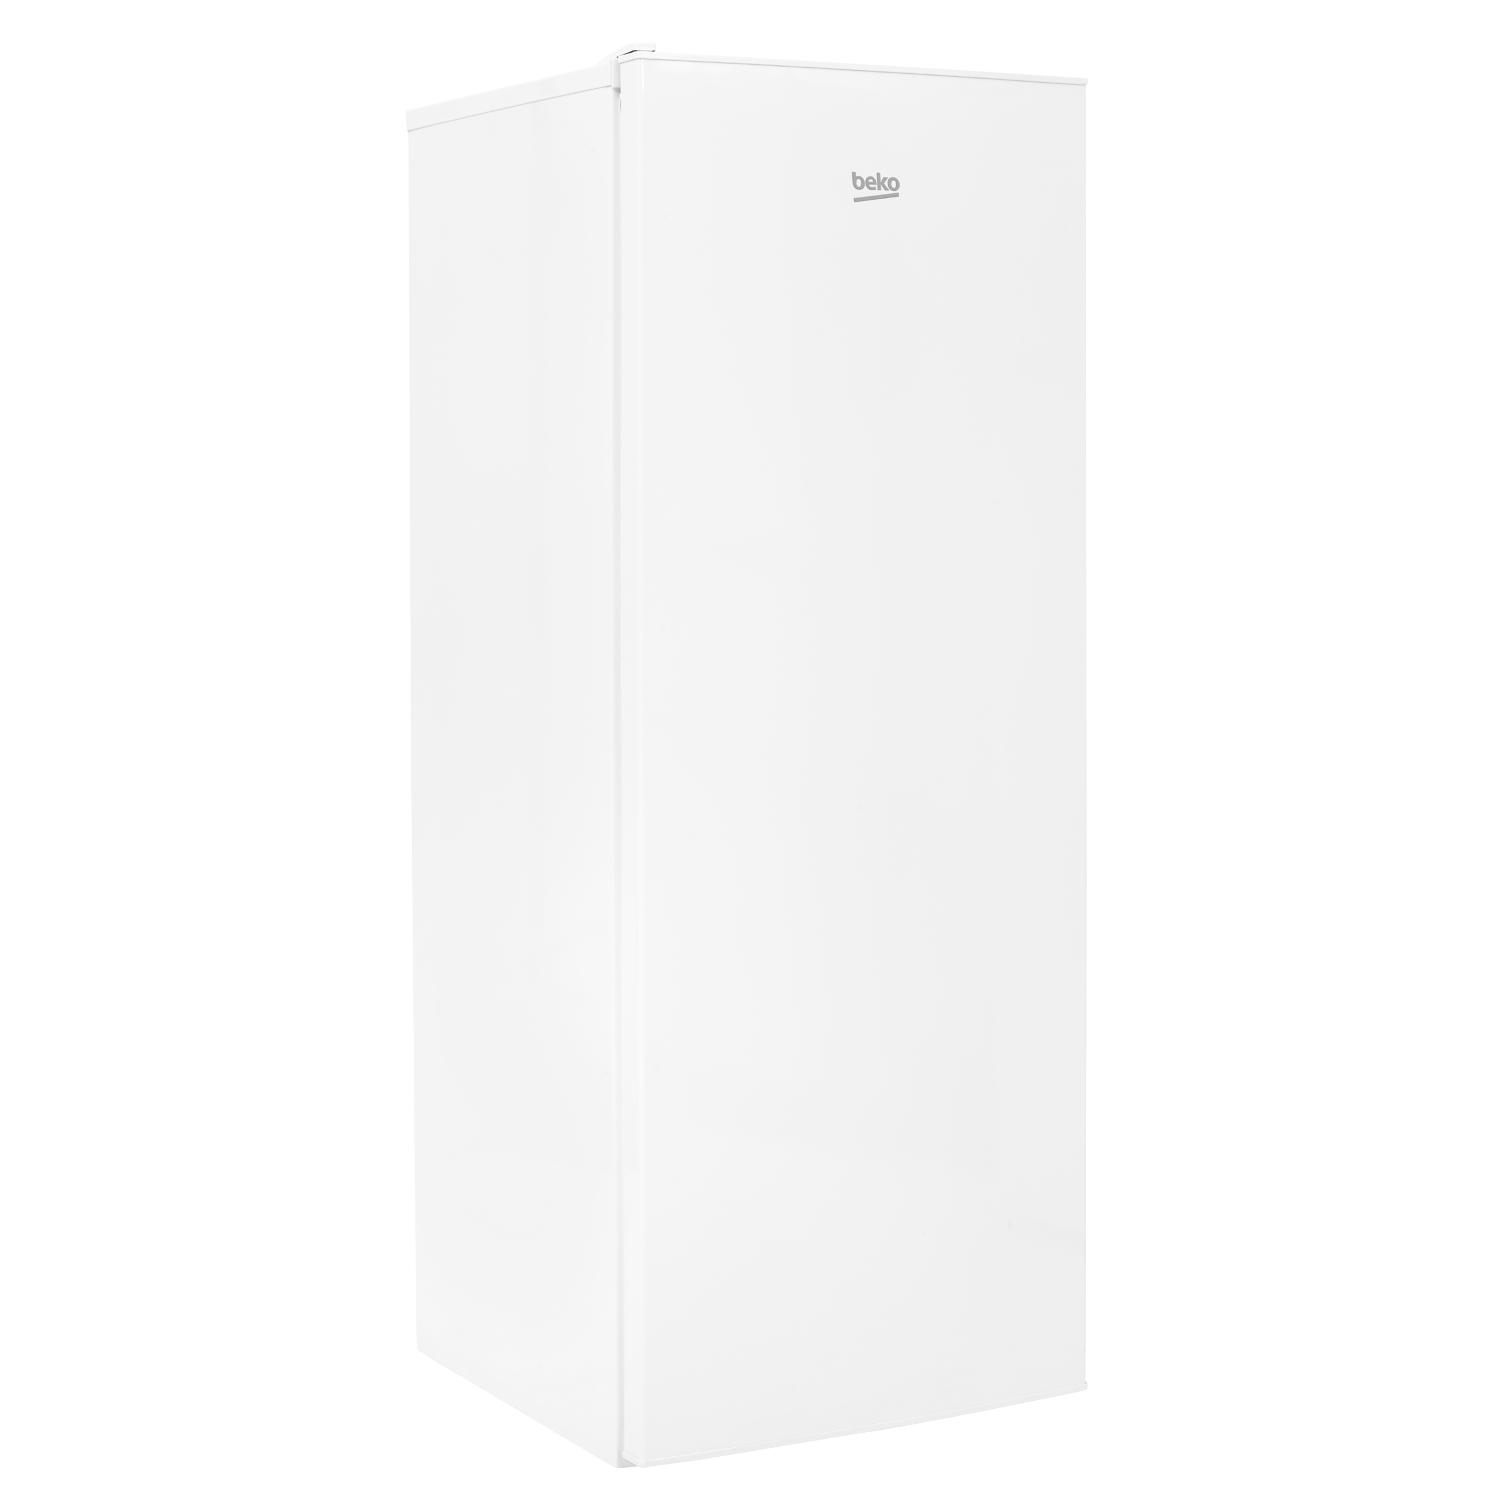 Beko 55cm Frost Free Tall Freezer - White - A+ Rated - 1